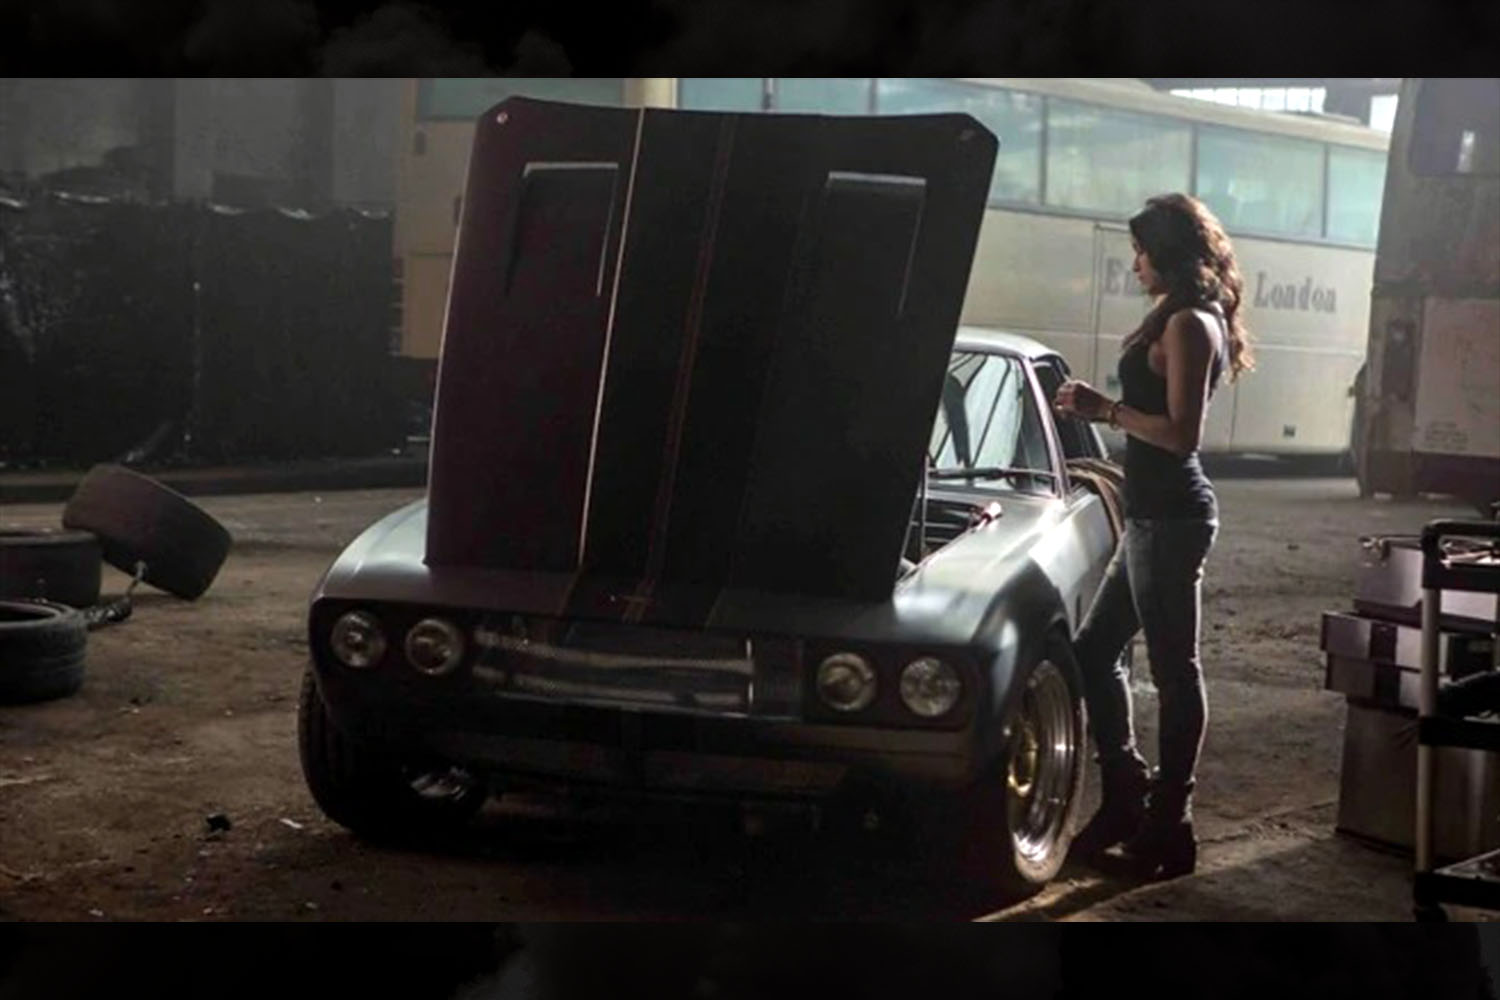 Letty Ortiz (Michelle Rodriguez) standing over a 1971 Jensen Interceptor in a garage in a scene from Fast & Furious 6